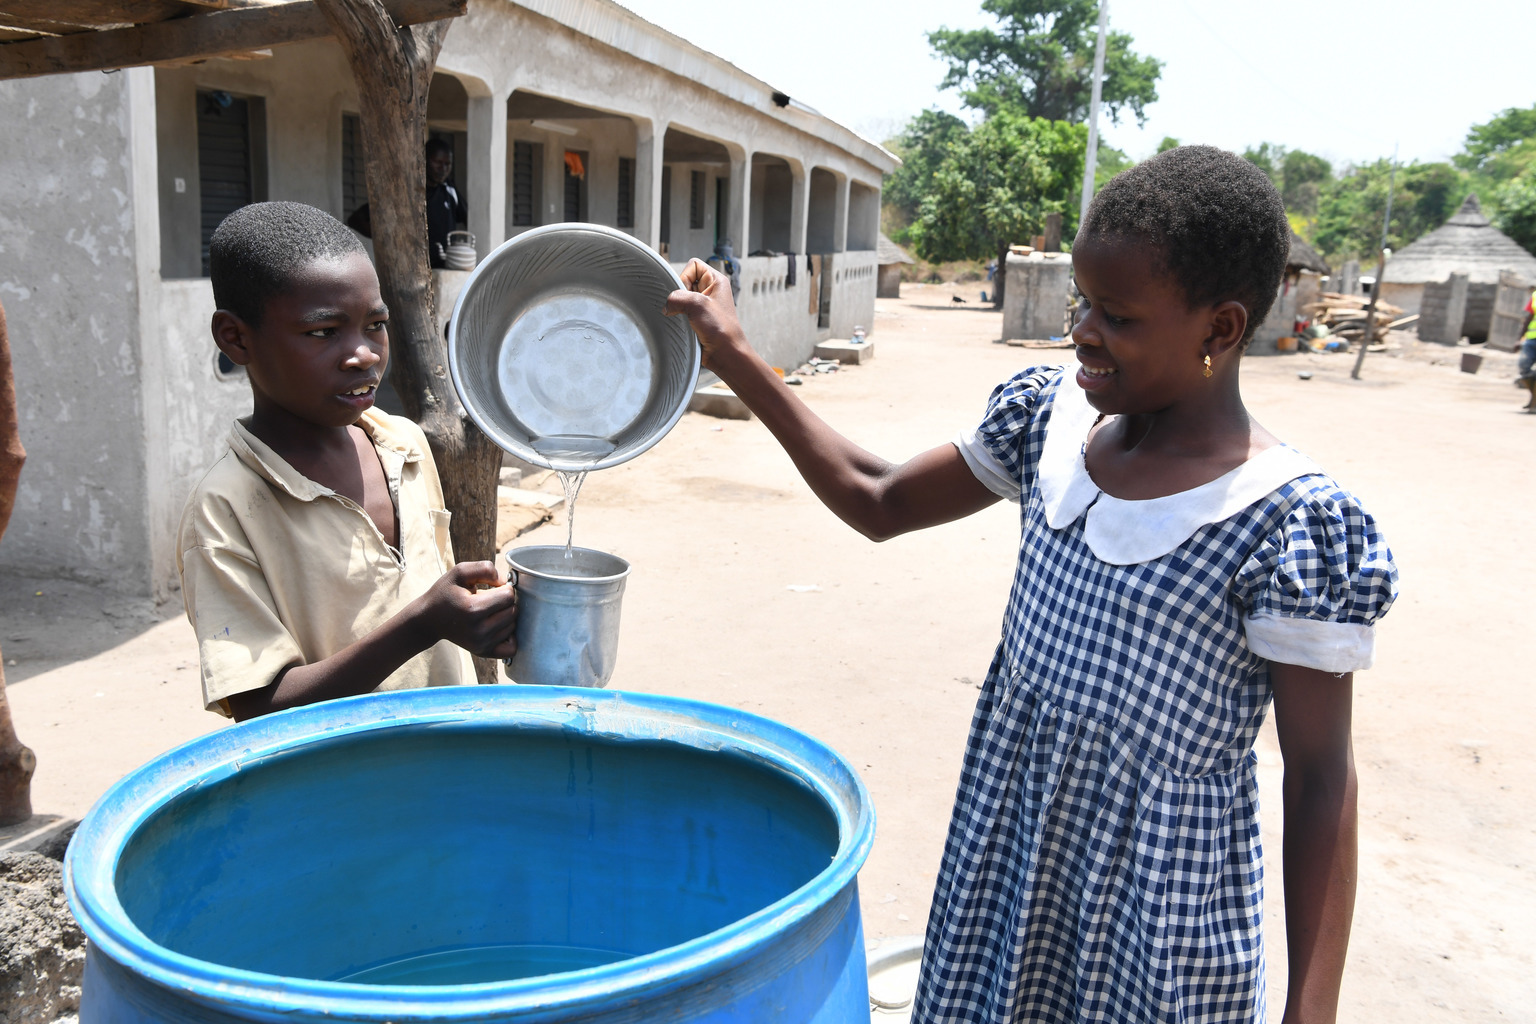 Two young children drinking safe water in the village of Kotouba, in northwest Côte d'Ivoire.